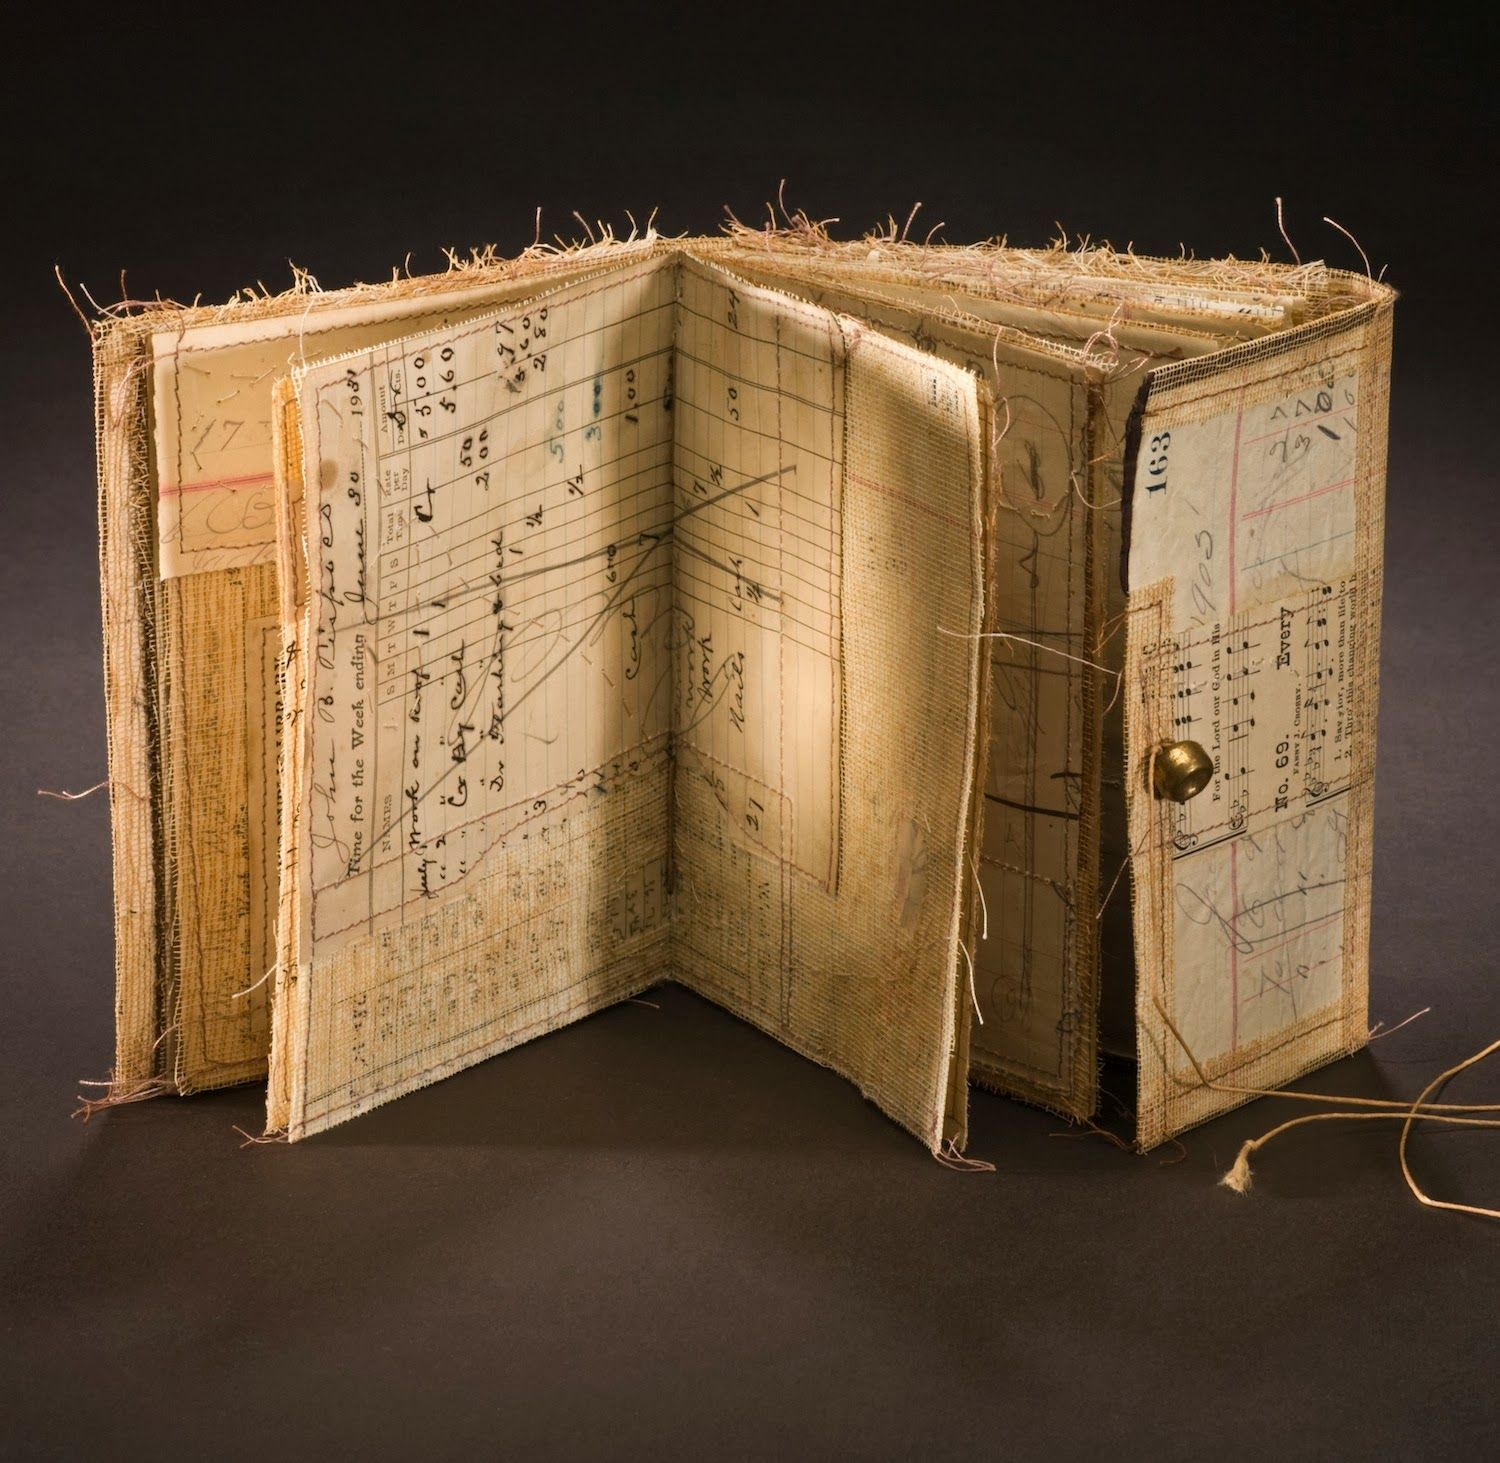 Limp Bindings From The Vatican Library